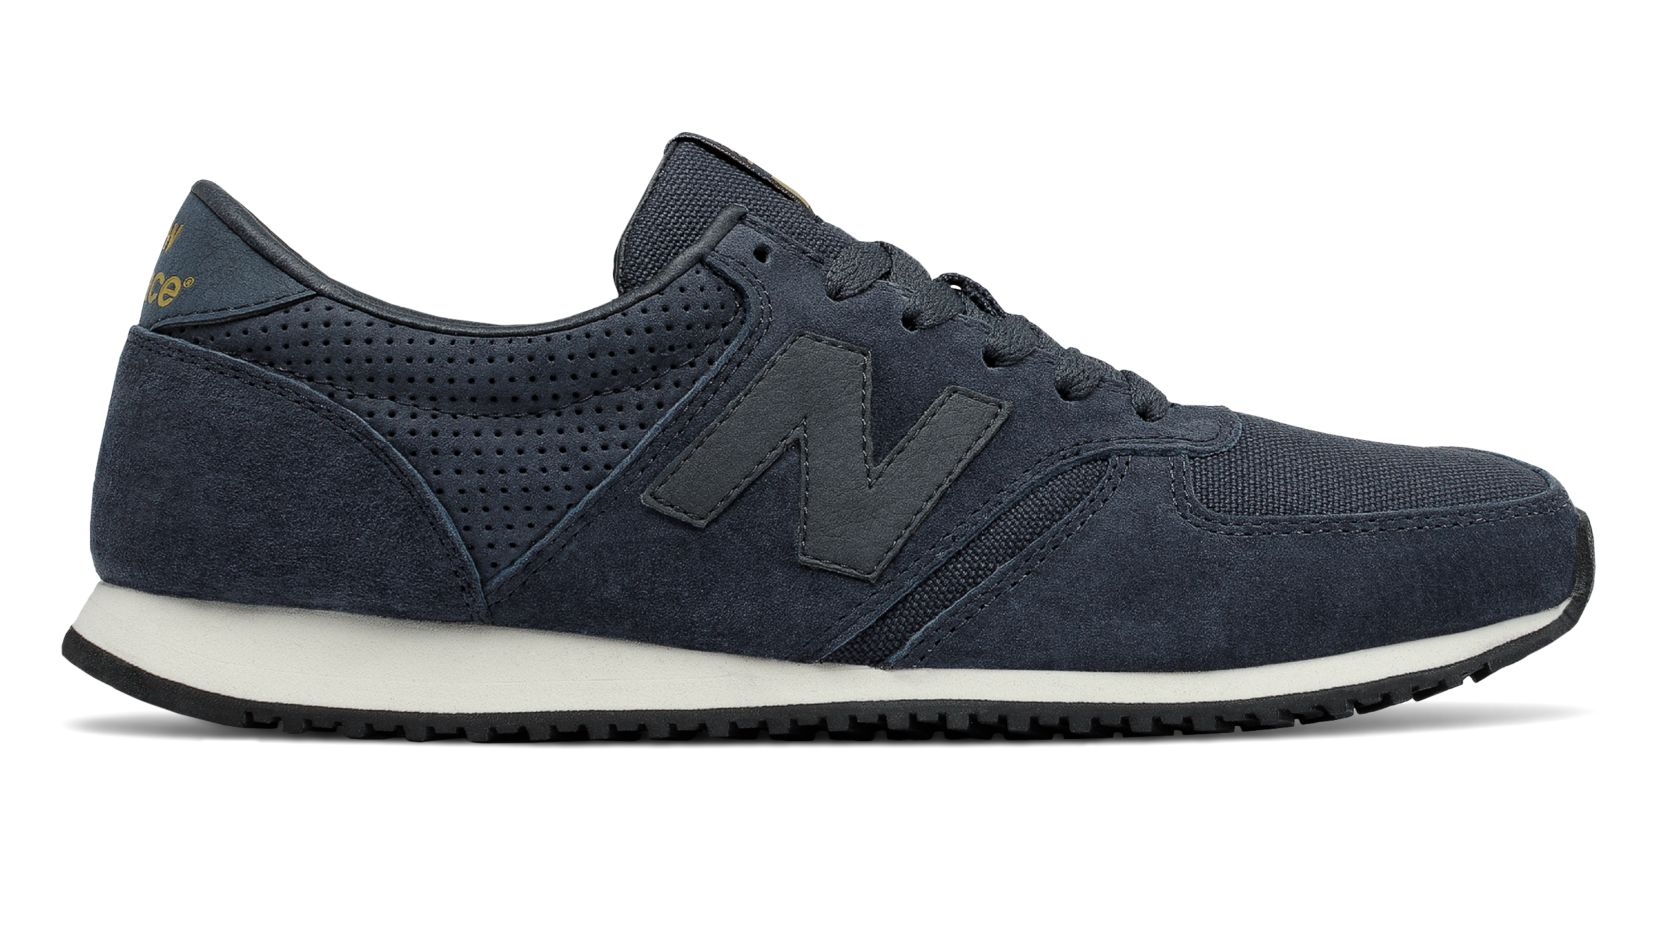 NB 420 70s Running Pigskin, Navy with Black